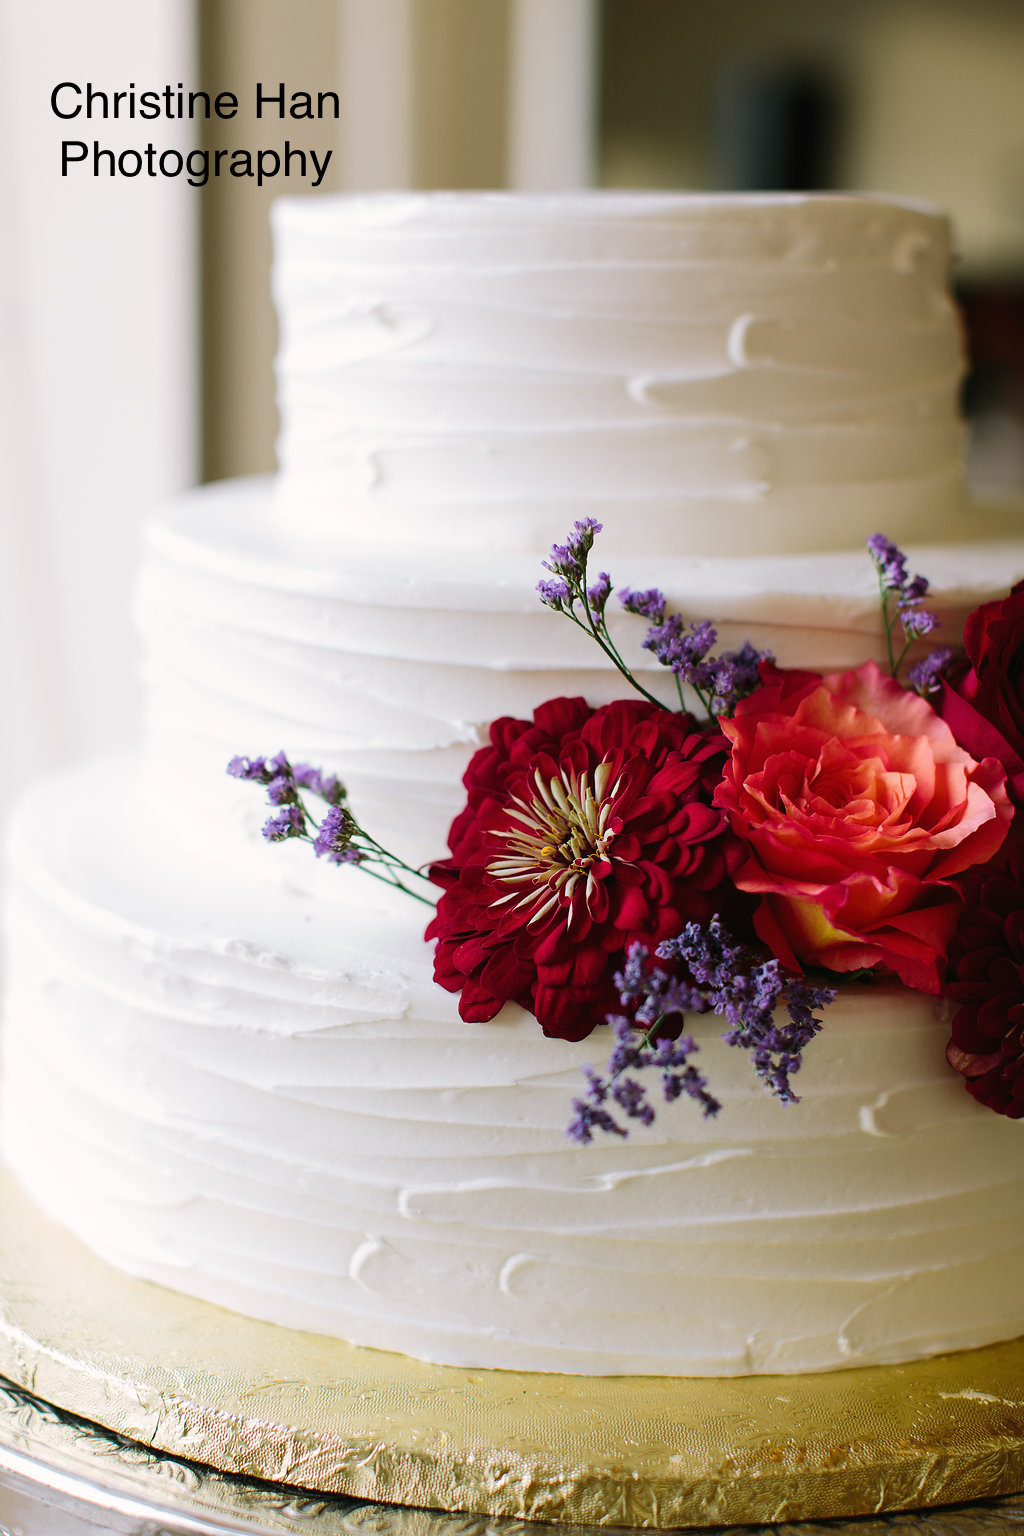 Wedding Cake at The Garrison From Christine Han Photography